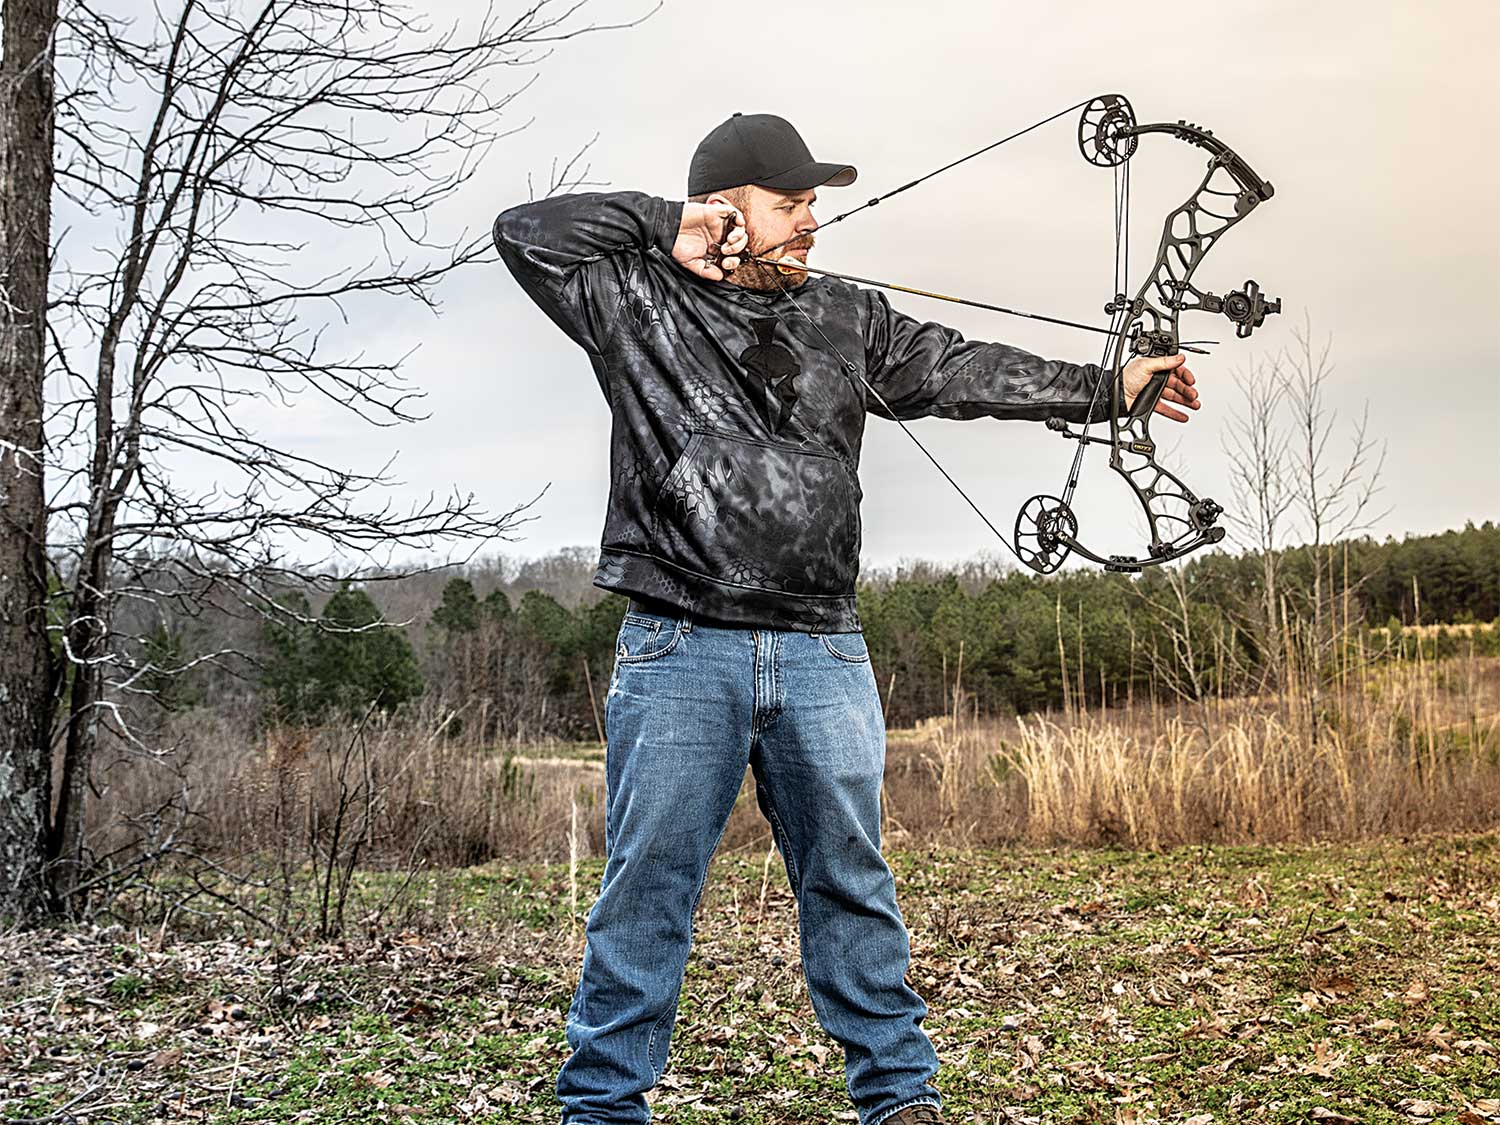 The 9 Best New Compound Hunting Bows, Tested and Ranked